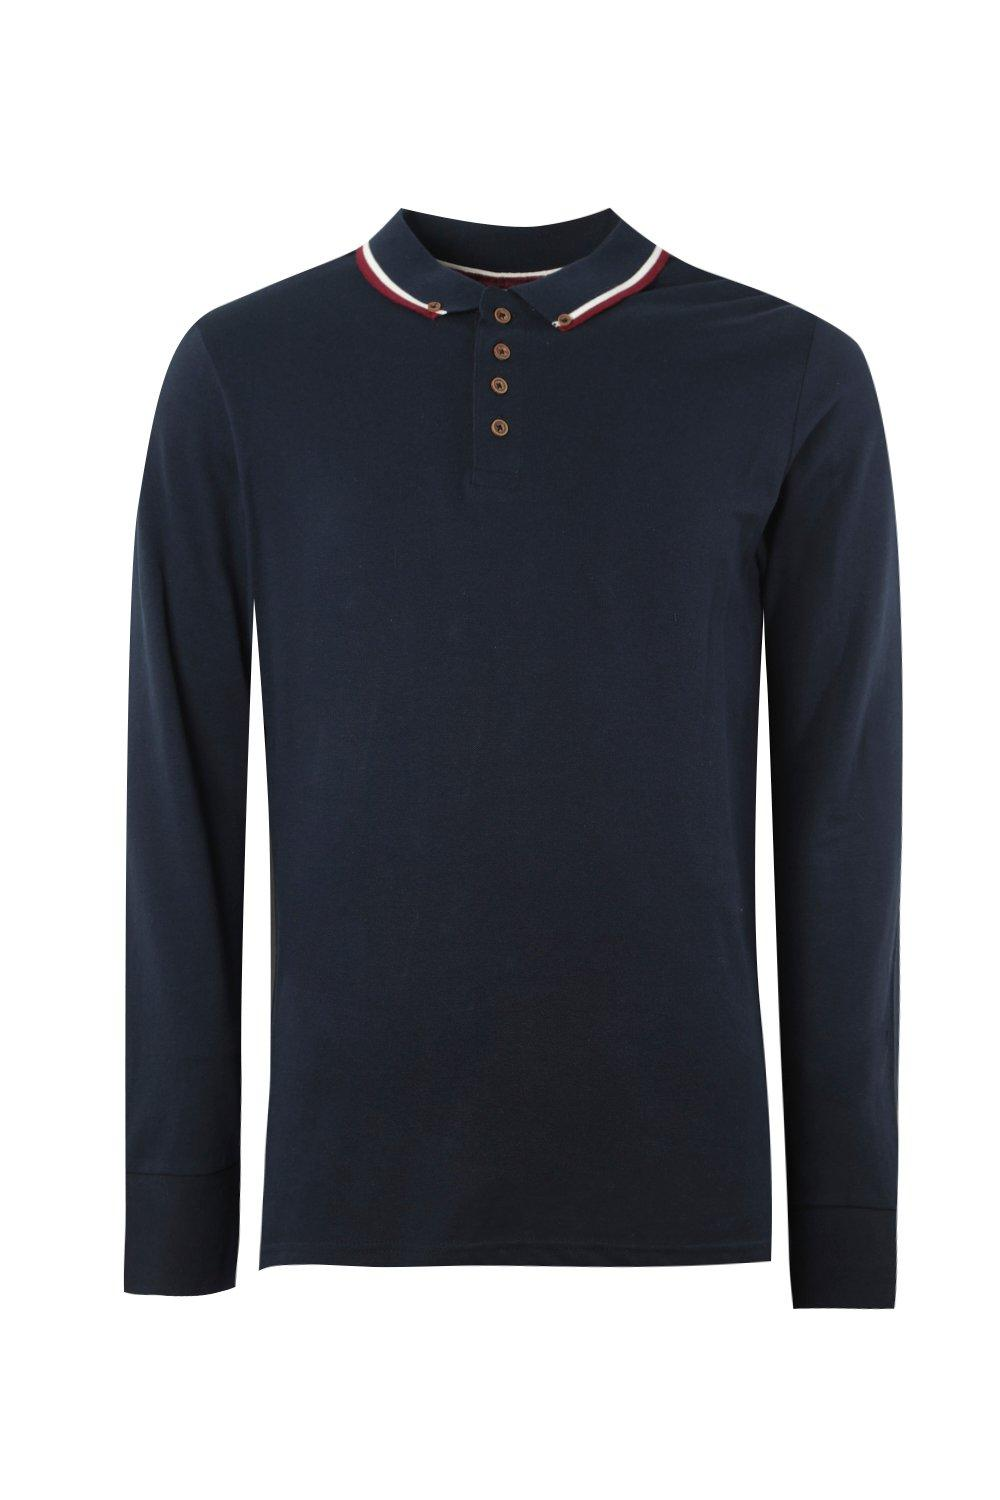 boohooMAN navy Long Sleeve Pique Polo With Tipping